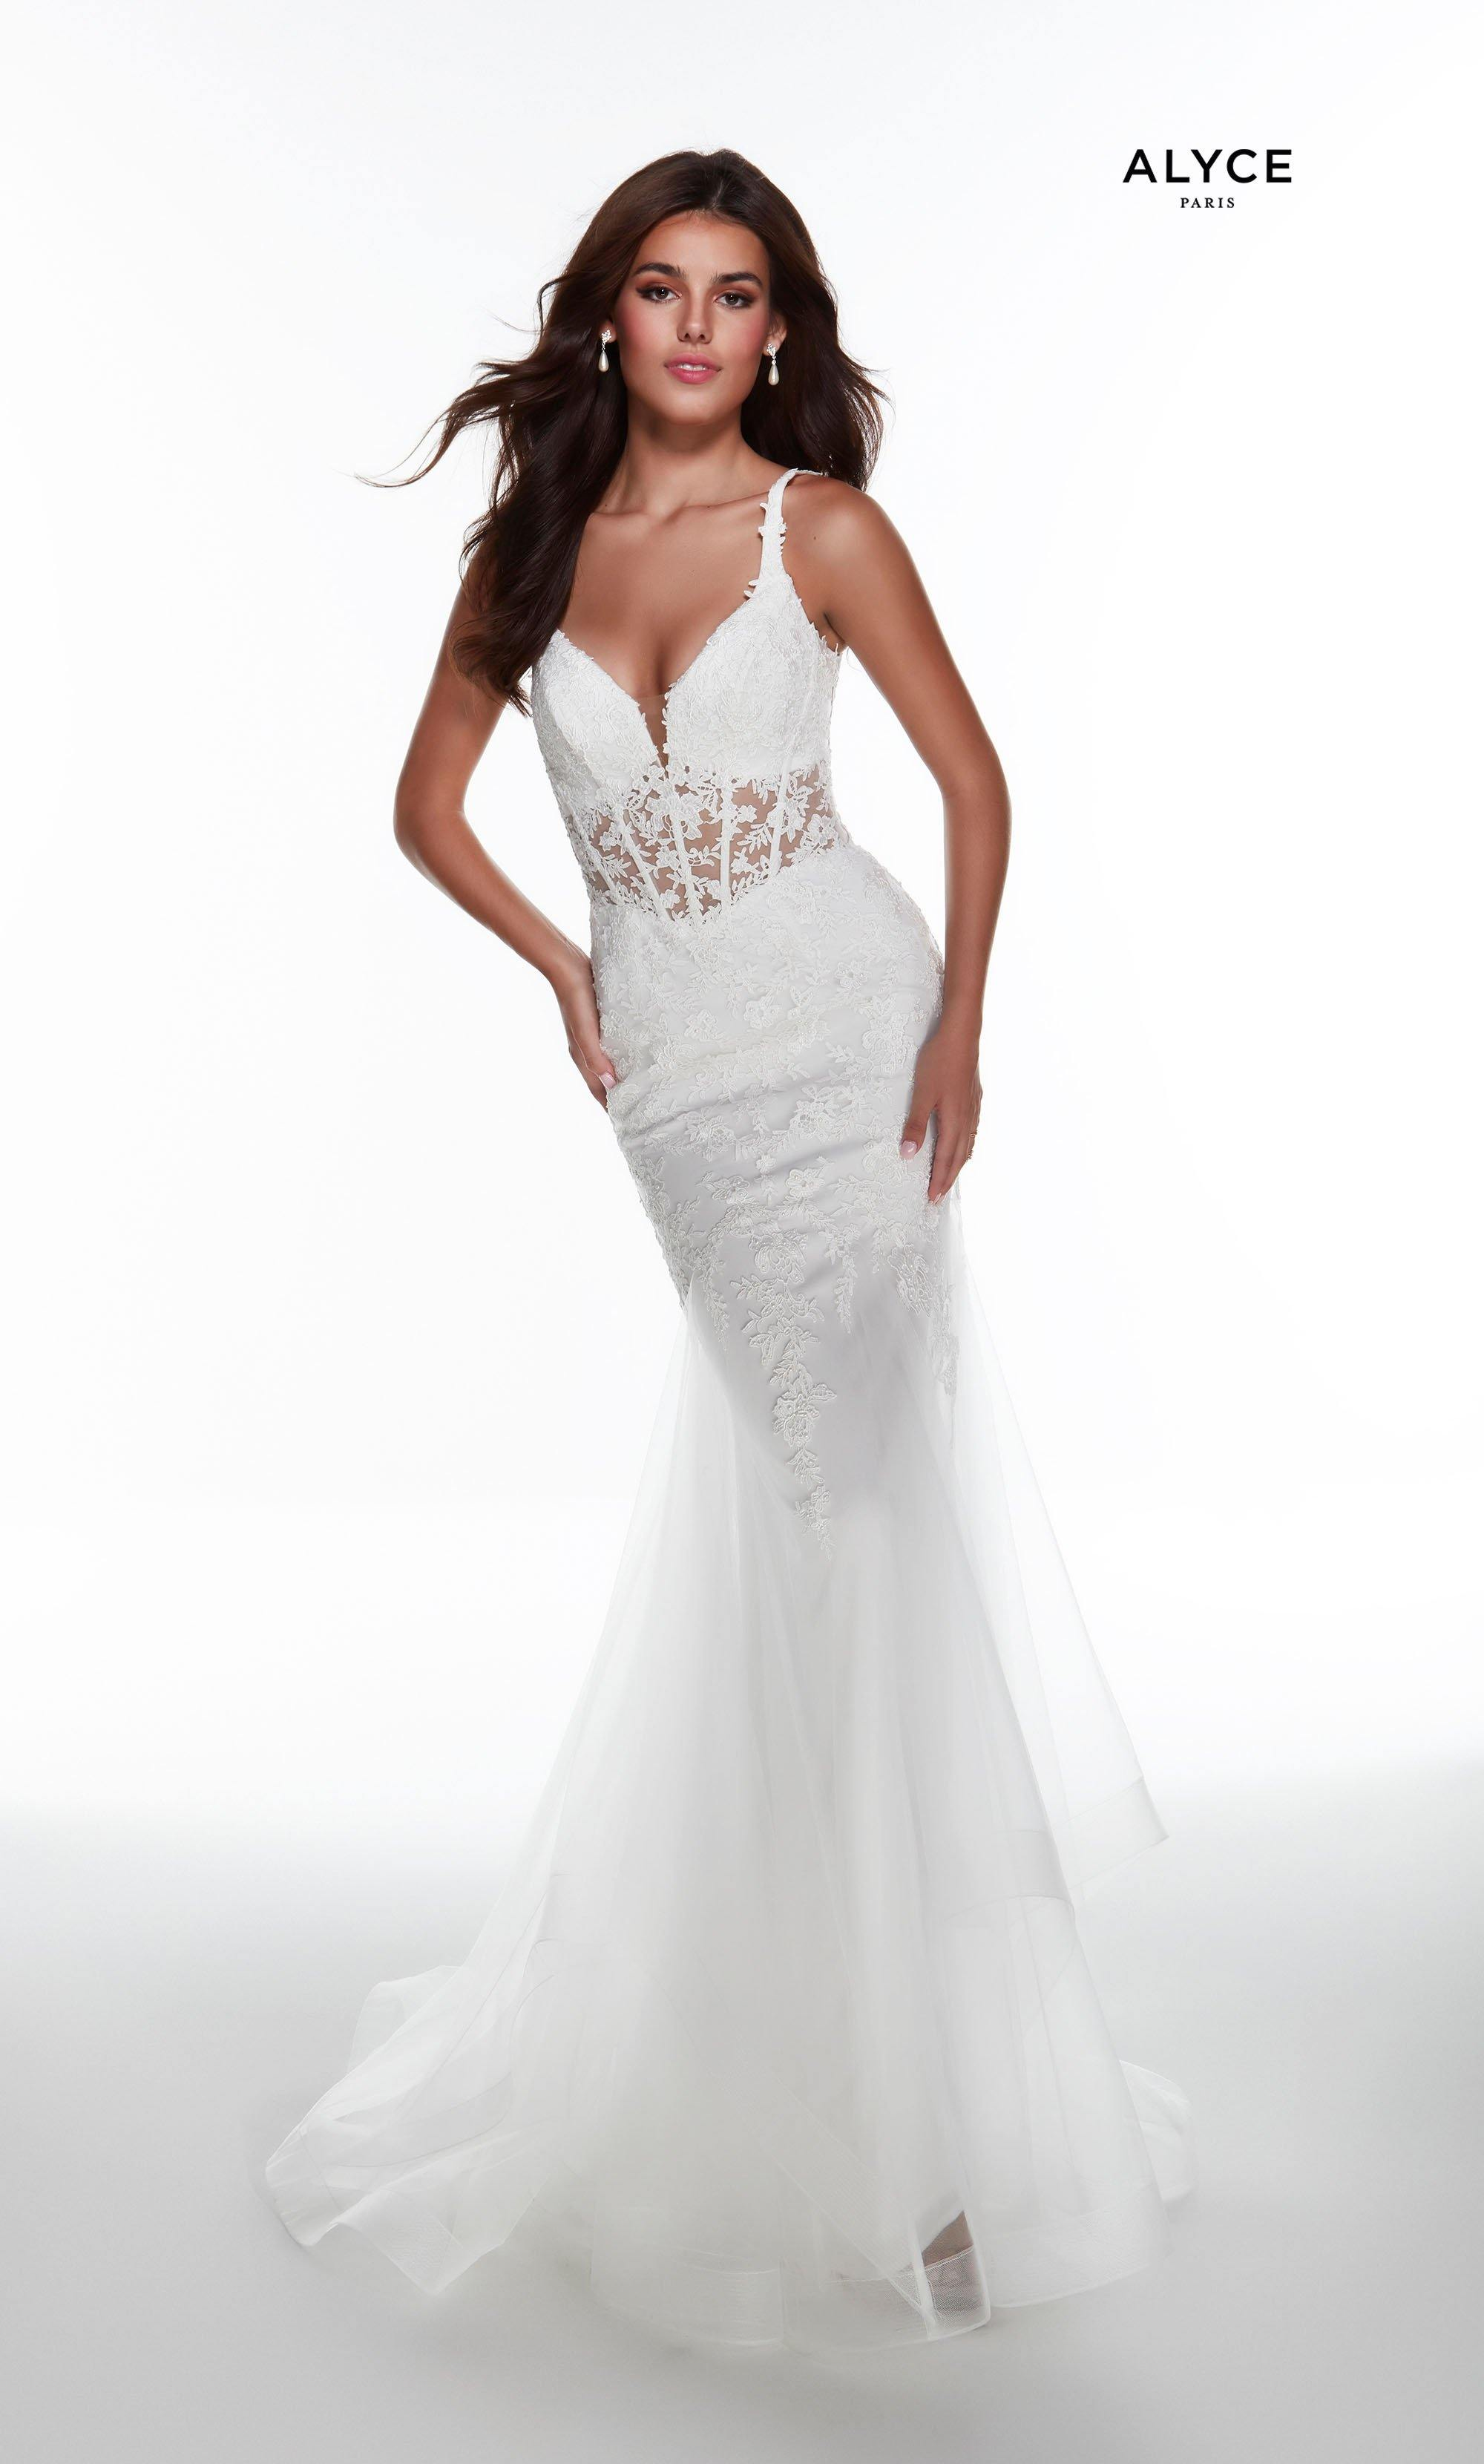 Solid Ivory mermaid wedding dress with a plunging neckline, sheer lace accents, and layered tulle skirt